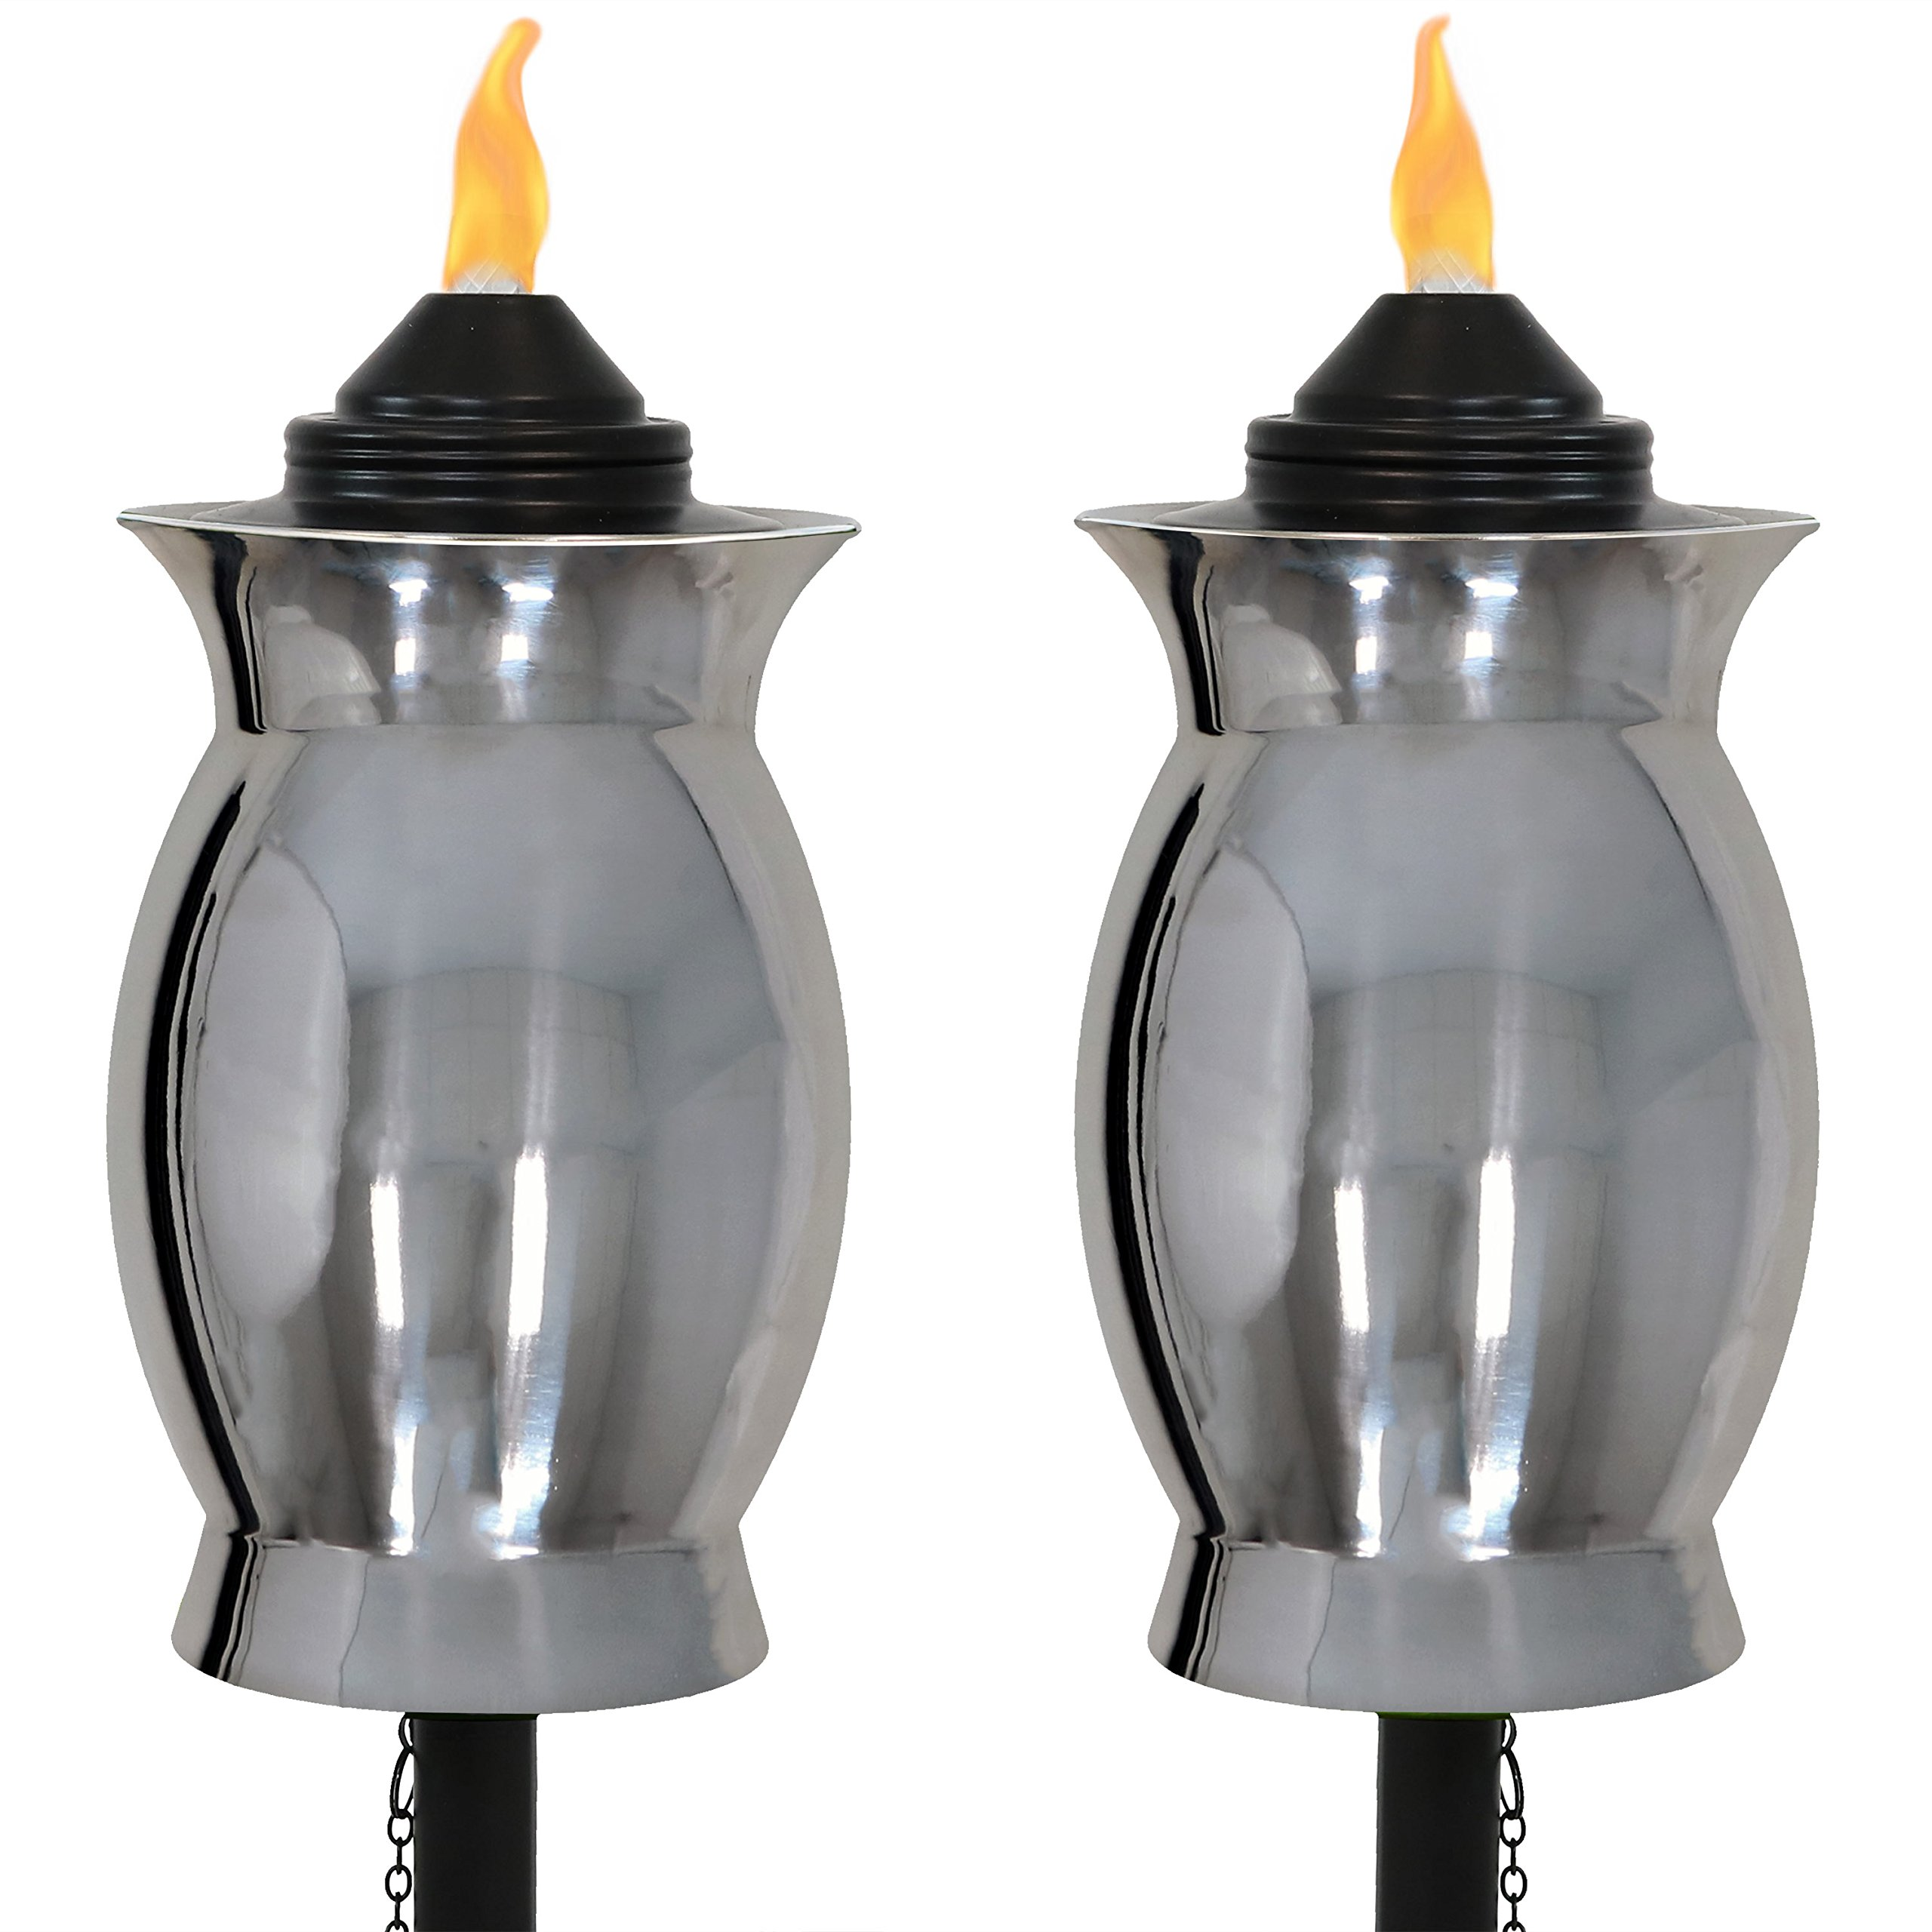 Sunnydaze Stainless Steel Outdoor Torches with Black Snuffer, Metal Patio Citronella Torch, 23- to 65-Inch Adjustable Height, 3-in-1, Set of 2 by Sunnydaze Decor (Image #1)